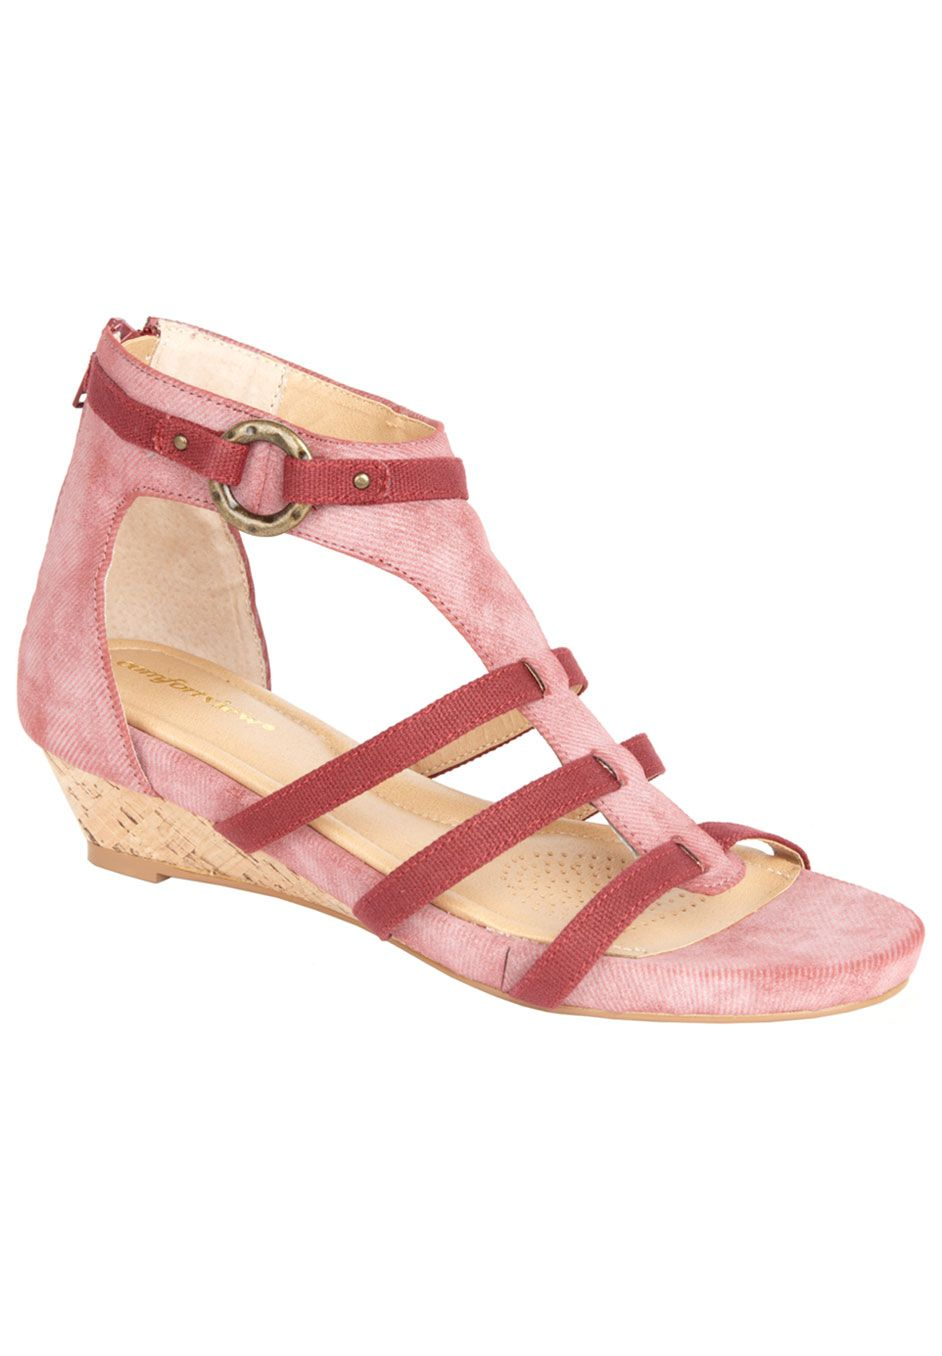 37676c932d9d Wide Width Shoes   Accessories for Women. Drew Wedge Sandal by Comfortview®